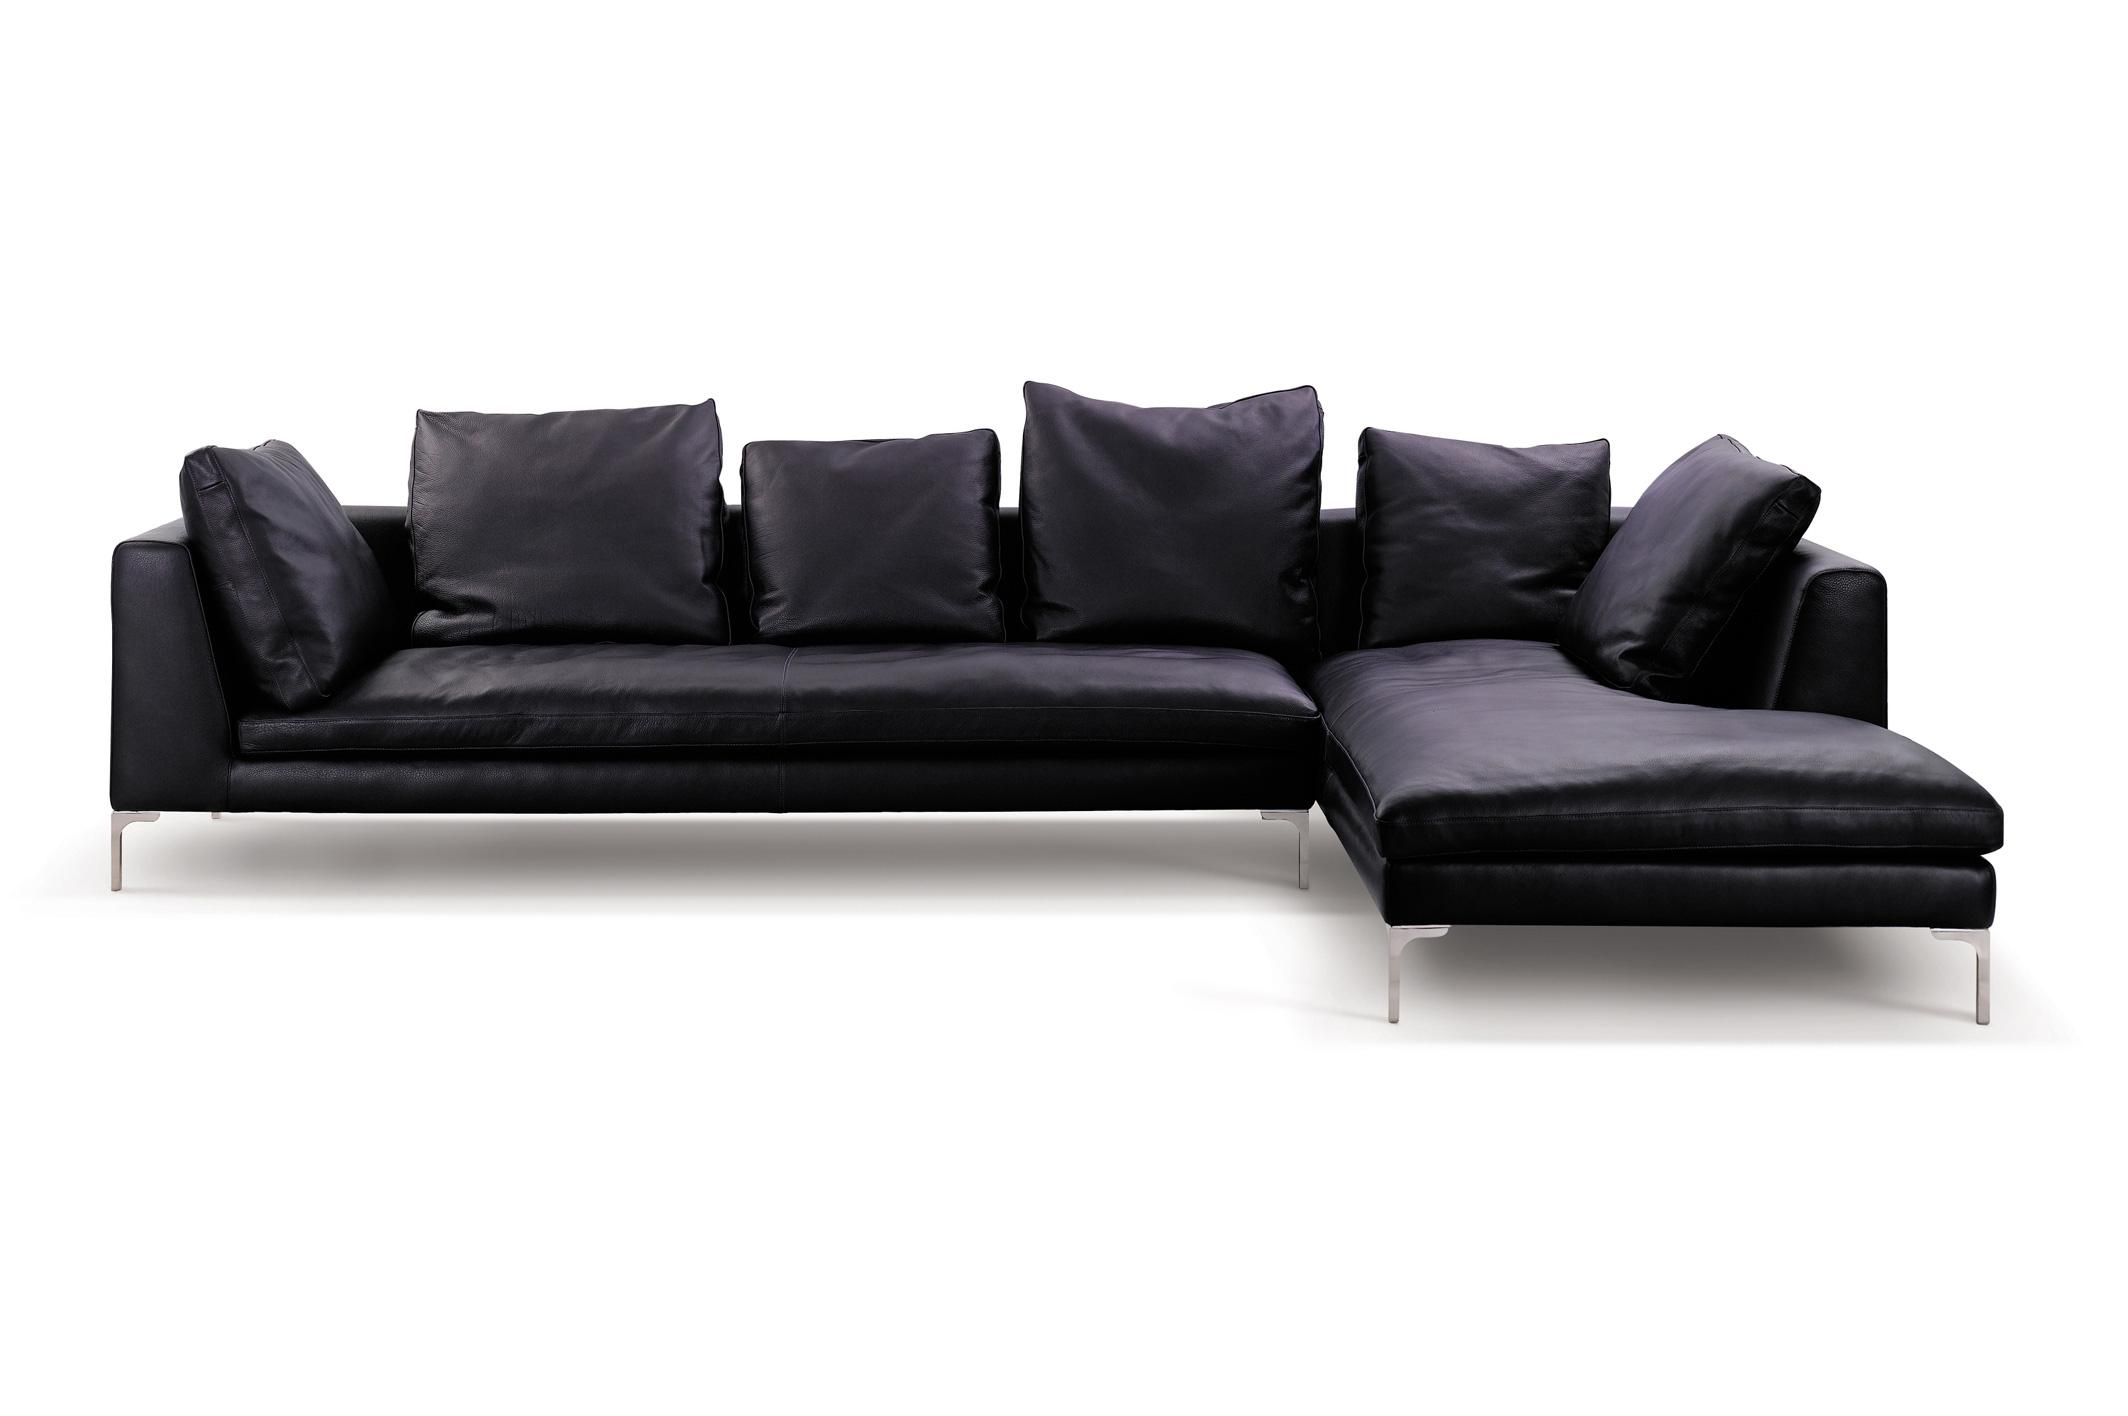 Extraordinary L Shaped Sofa #3746 : Furniture – Best Furniture Reviews Inside Small L Shaped Sofas (Image 3 of 20)